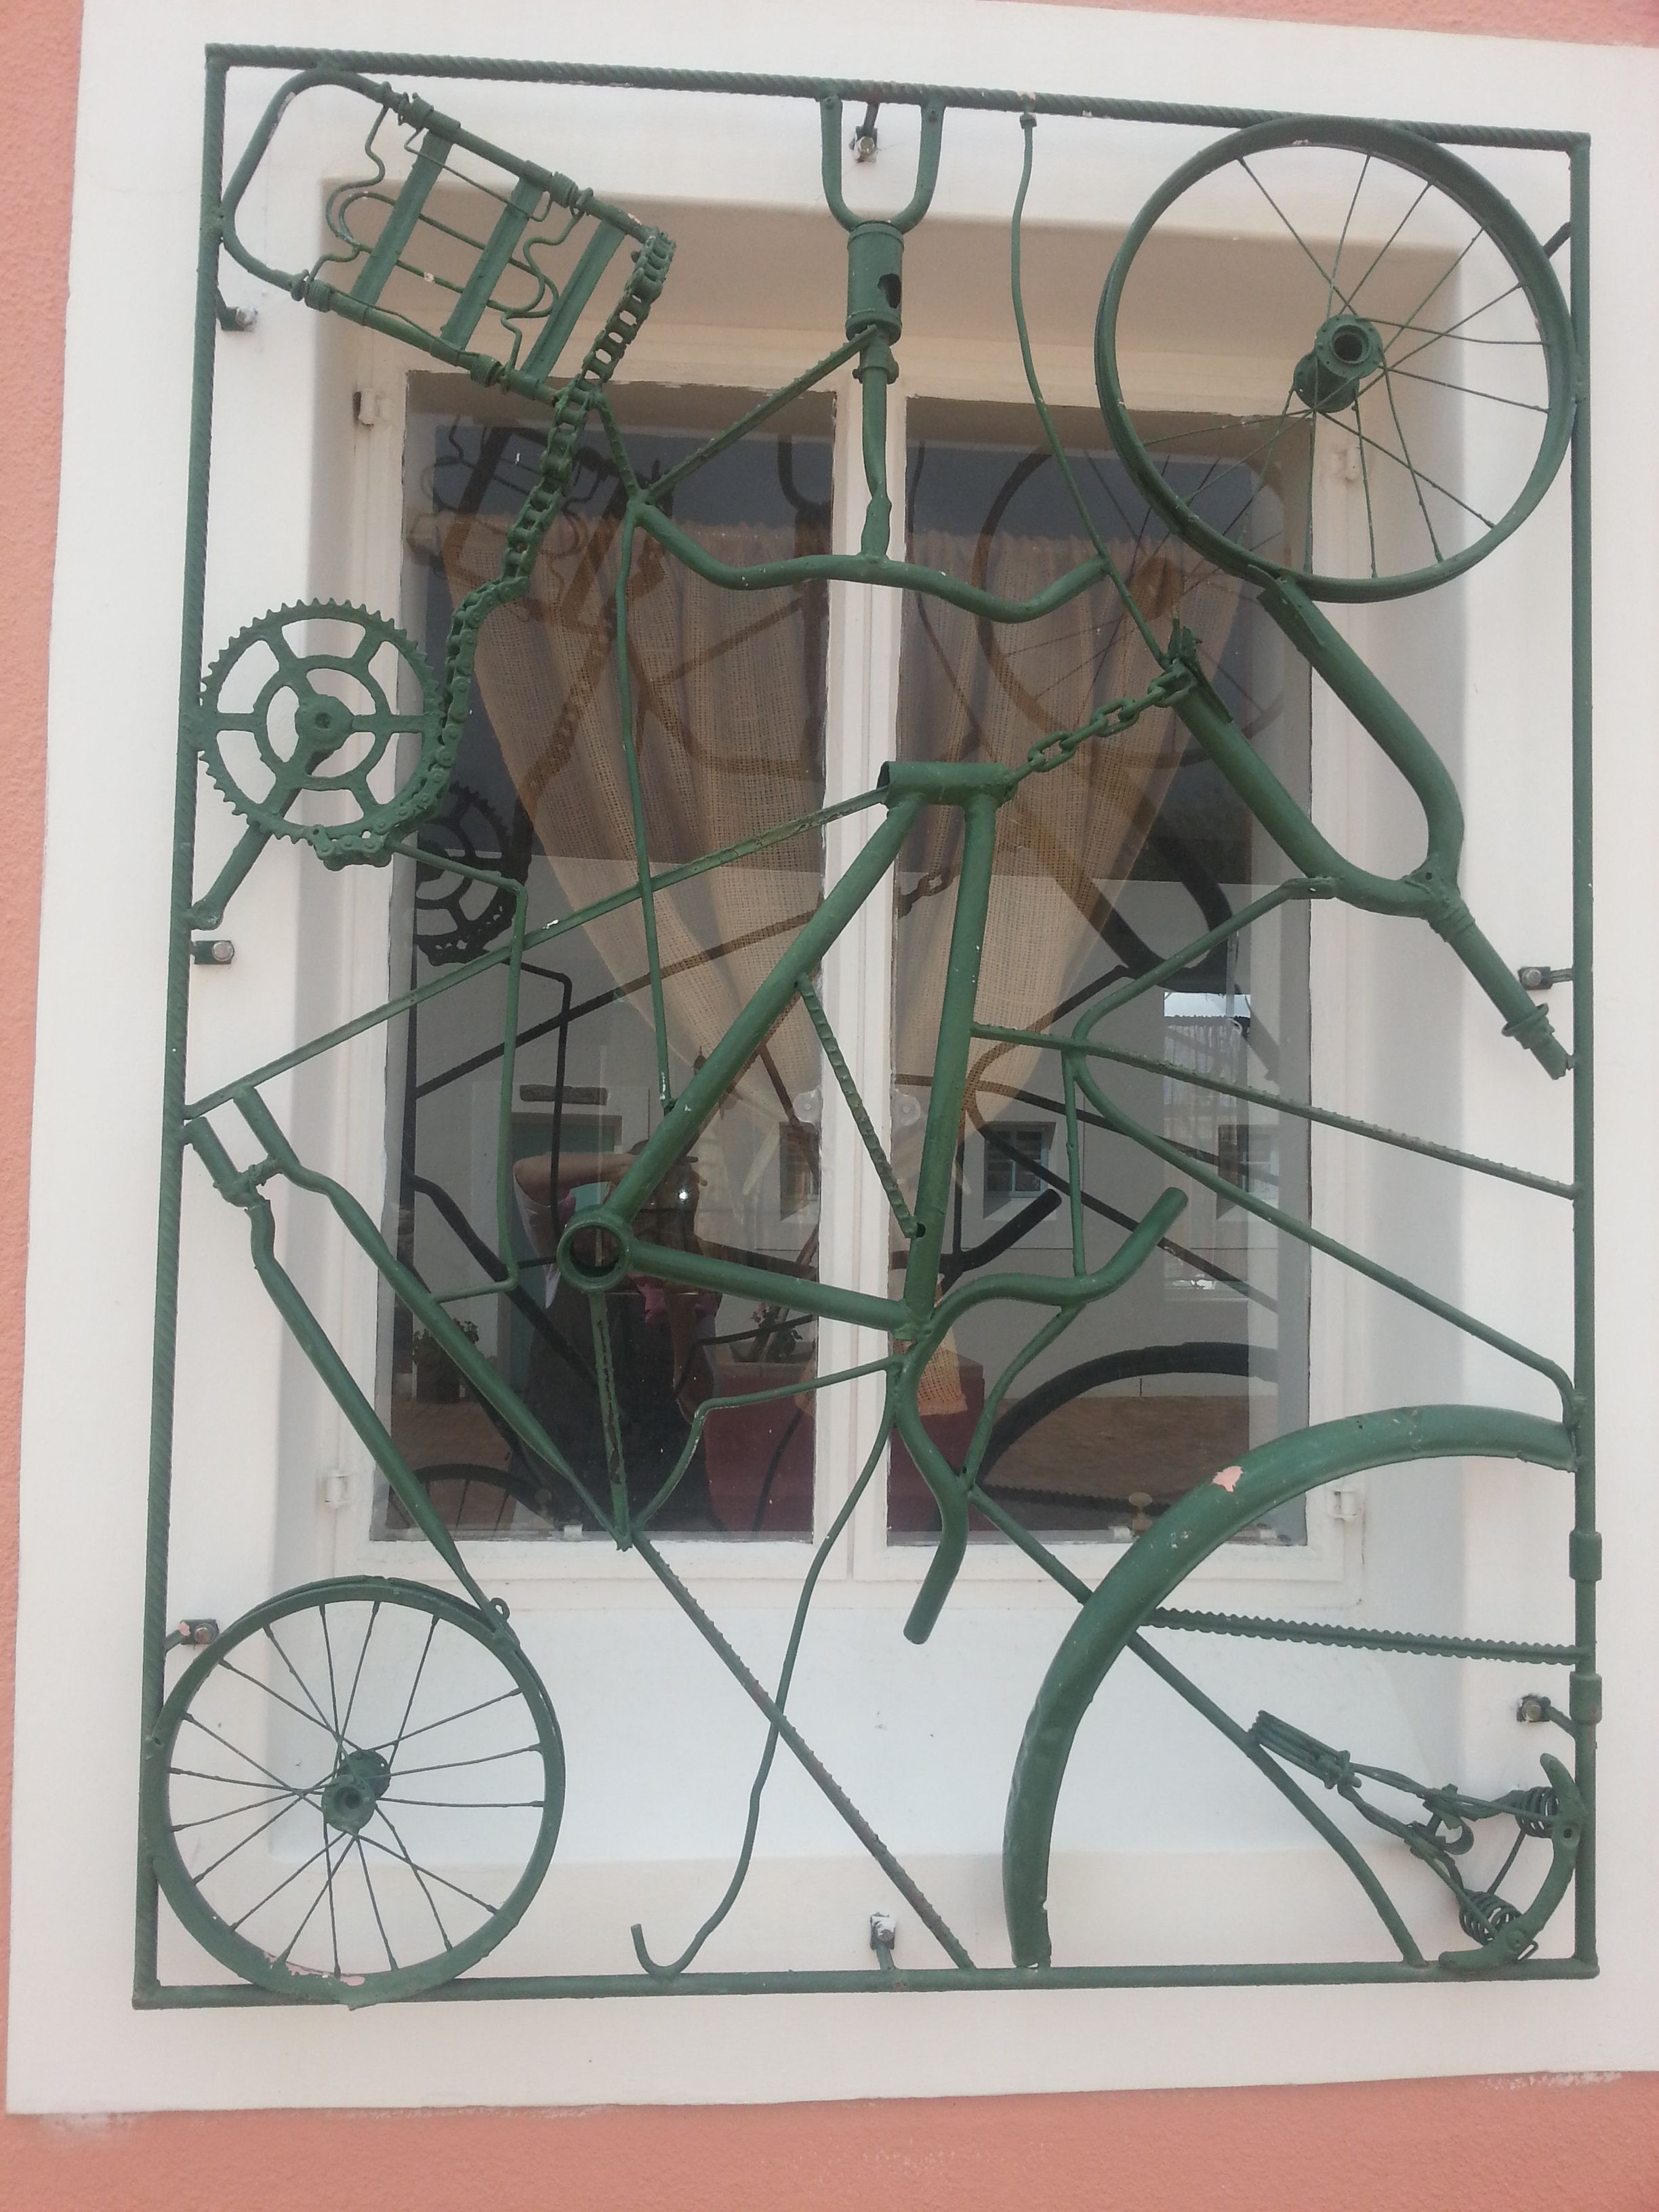 Creative Bicycle Burglar Bars That Are Fitted In South Africa They Made It To Our List Of The